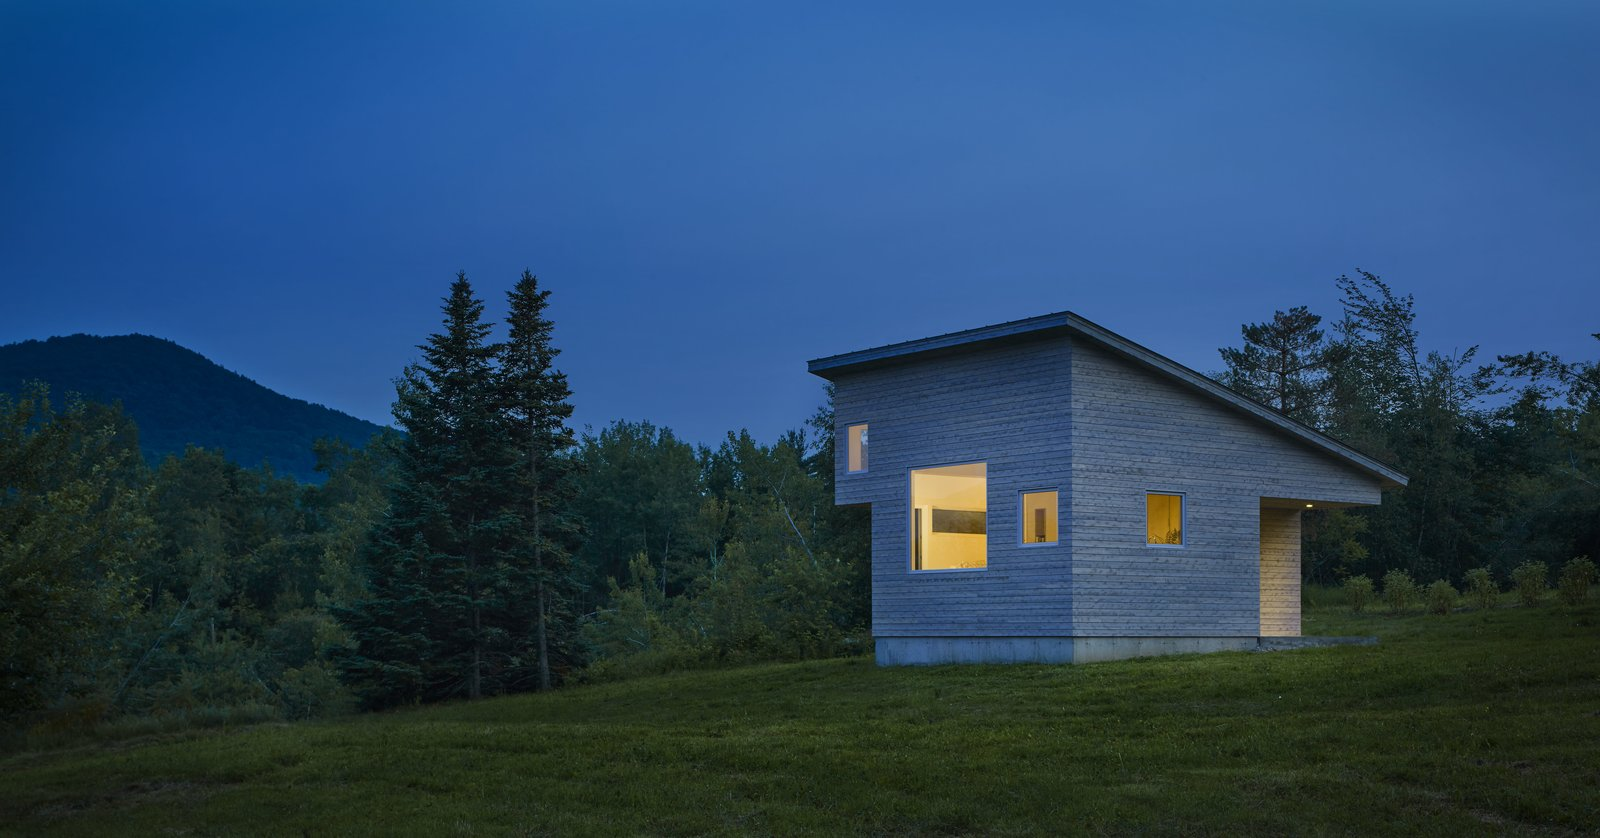 Exterior, House Building Type, Shed RoofLine, and Cabin Building Type  Photo 1 of 5 in A Mini-Home With Mega-Views